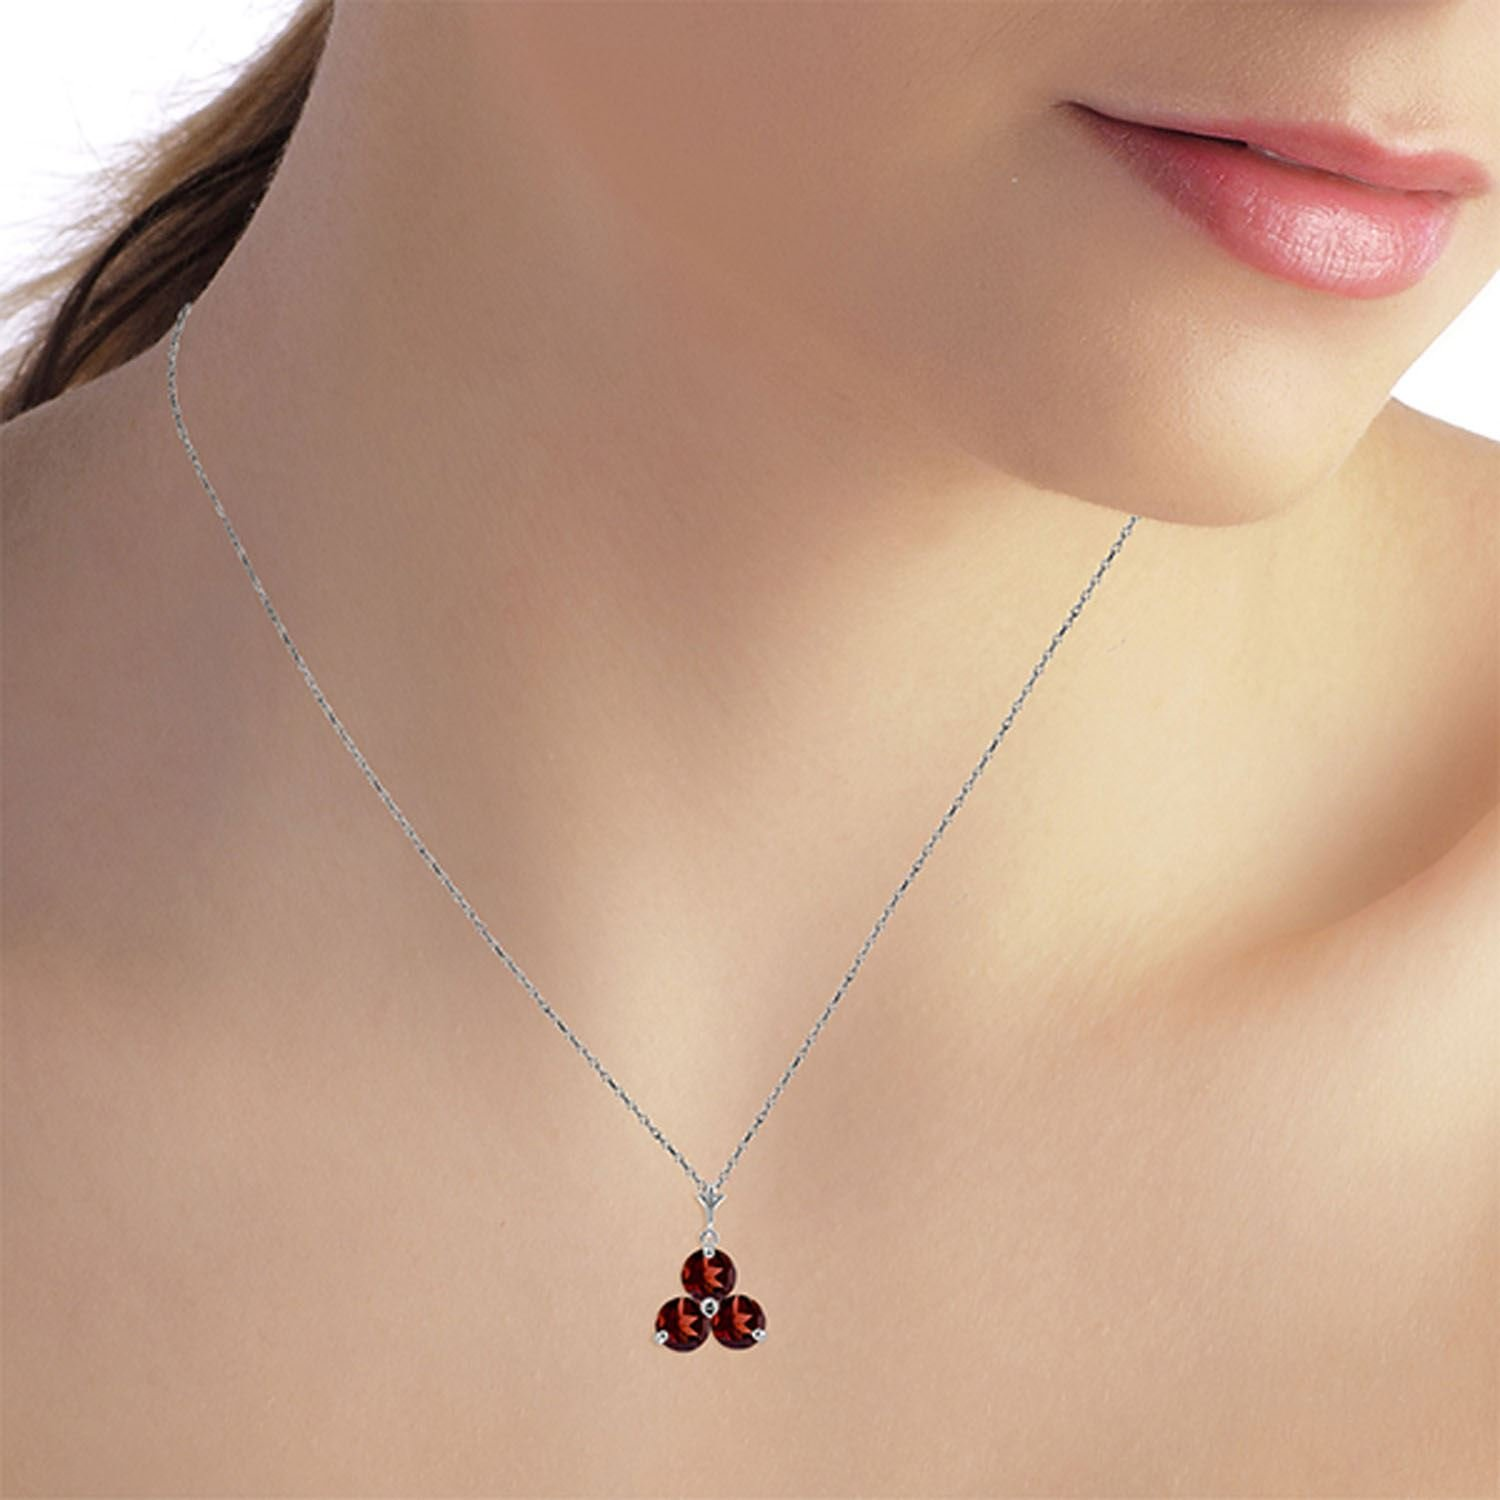 ALARRI 0.75 CTW 14K Solid White Gold Is A Marvel Garnet Necklace with 22 Inch Chain Length